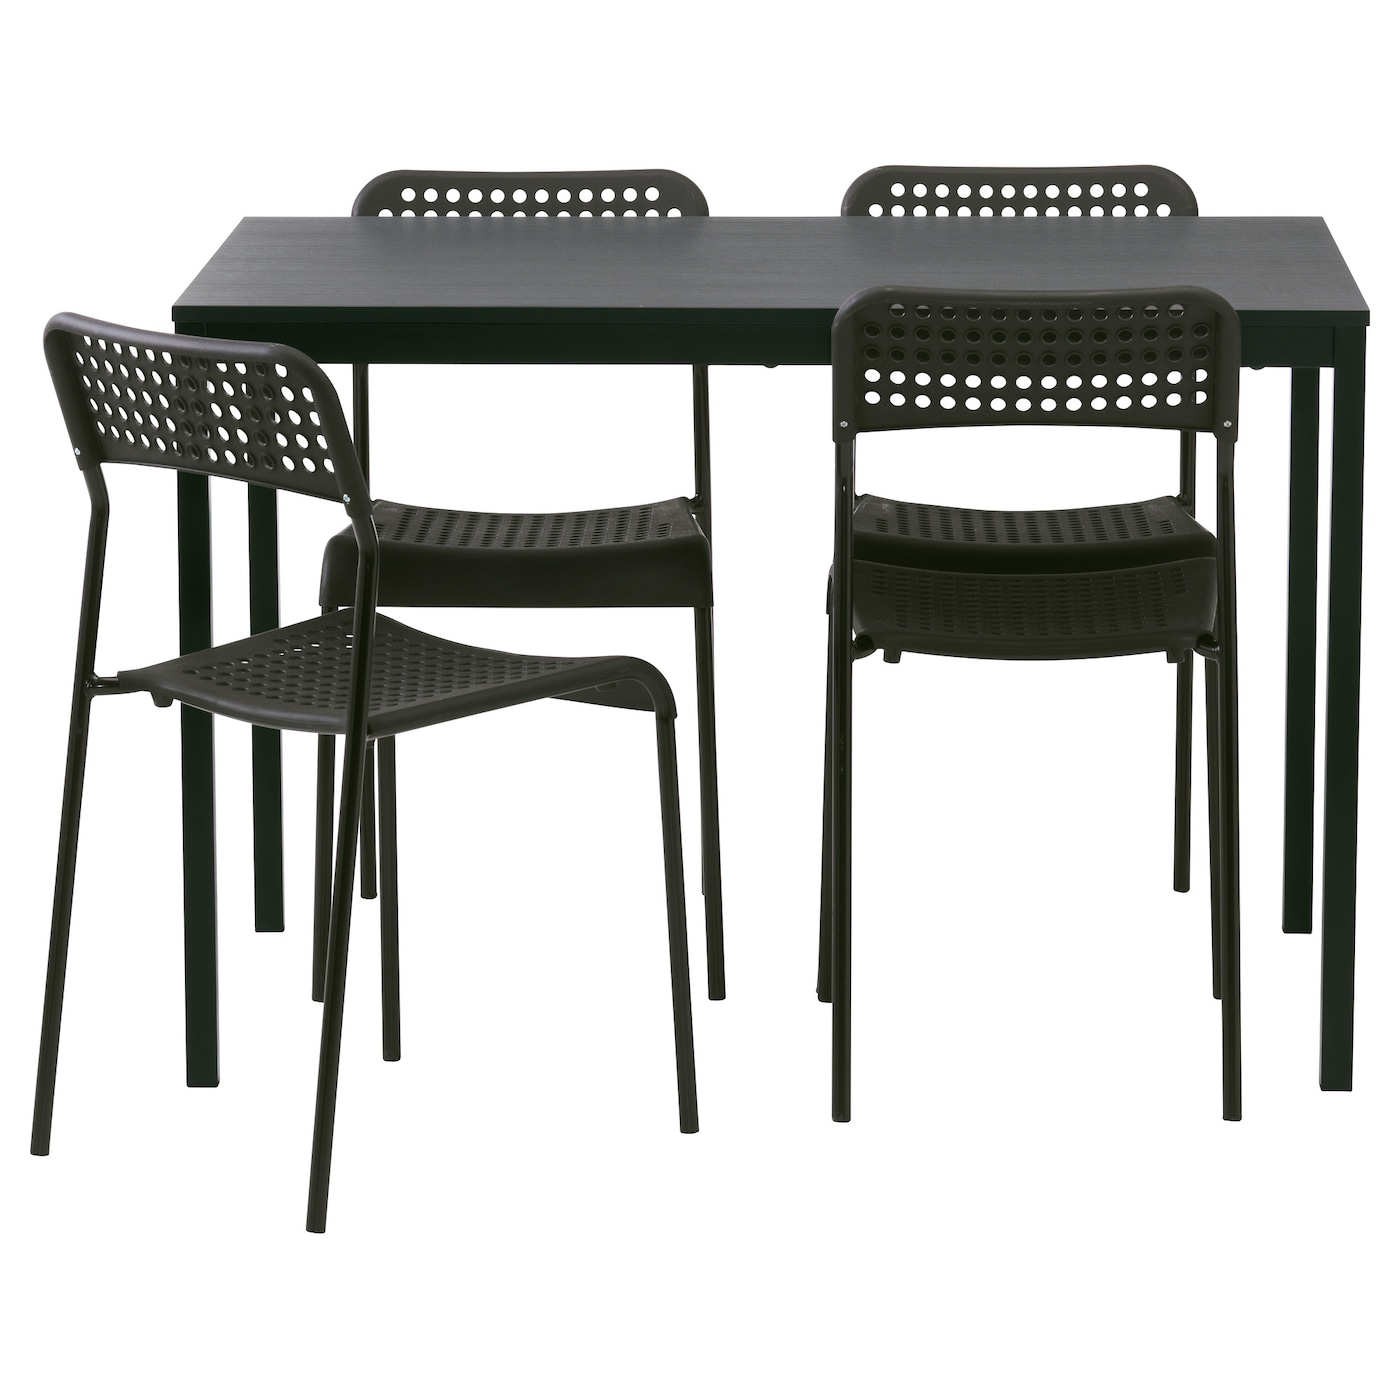 T rend adde table and 4 chairs black 110 cm ikea for Set de table ikea